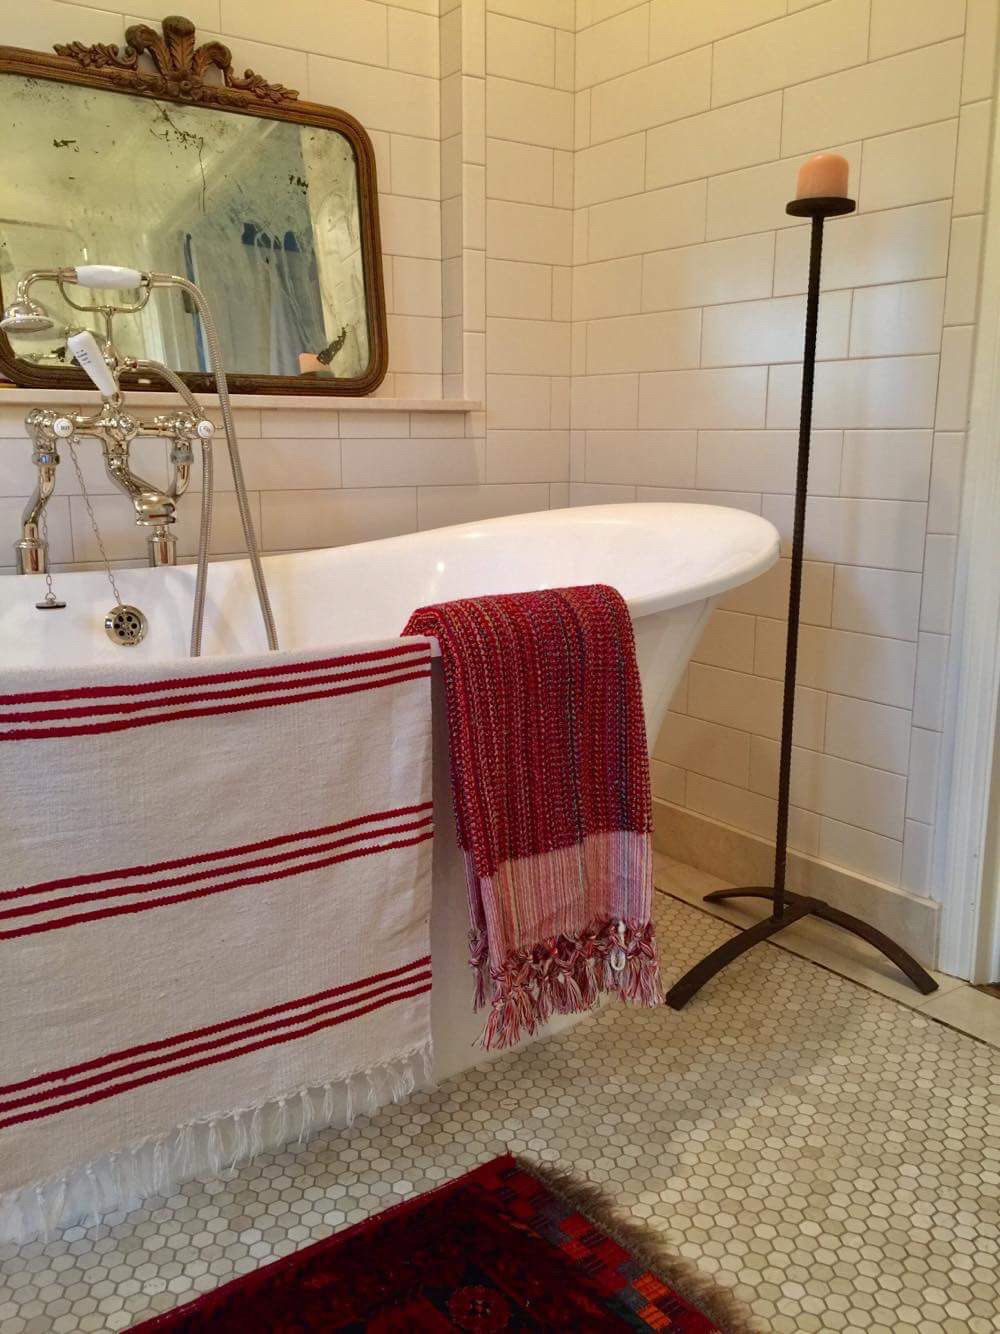 Best Turkish Bath Towels Red Muz Thick Looped Towel And White With Red Stripe Thin Looped Towel Add Warmth Turkish Bath Towels Turkish Towels Turkish Bath